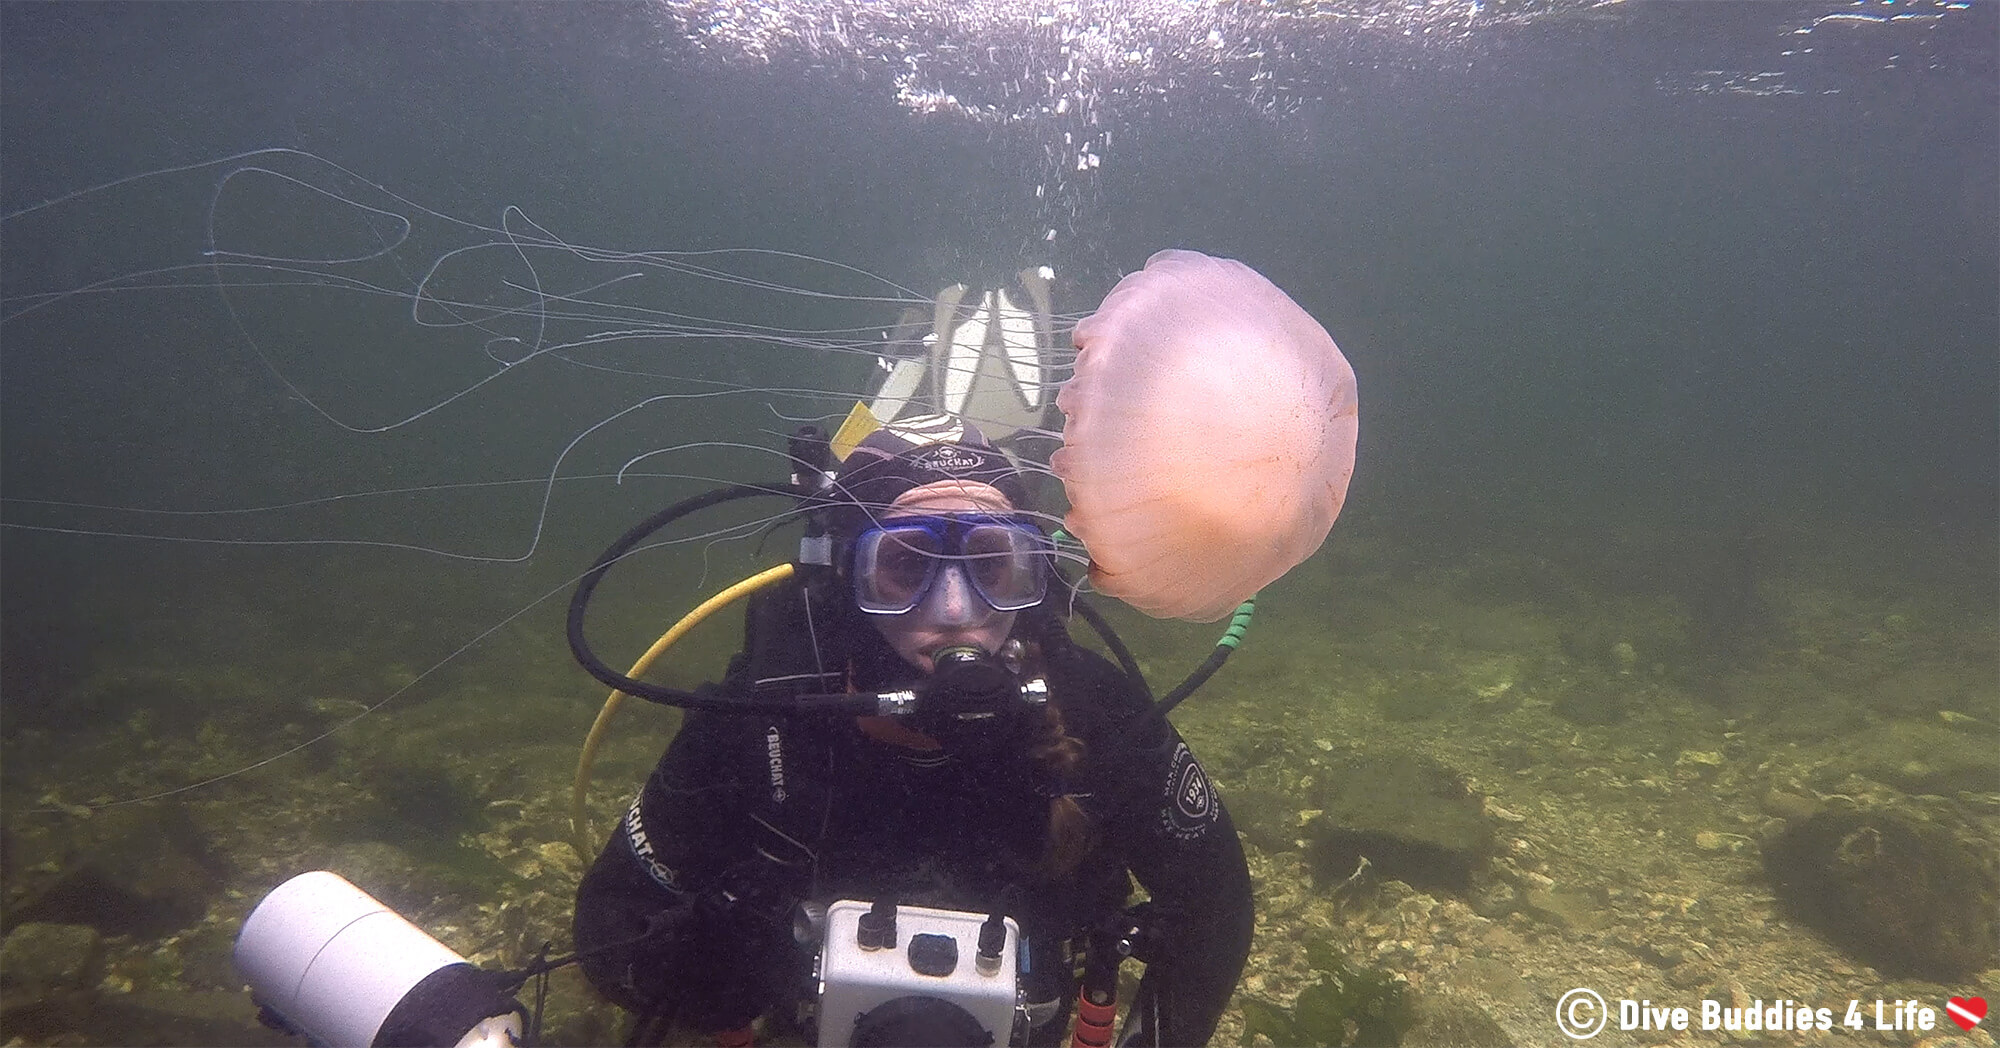 Ali Scuba Diving With A Jellyfish In The Netherlands Salt Water Lake, Europe